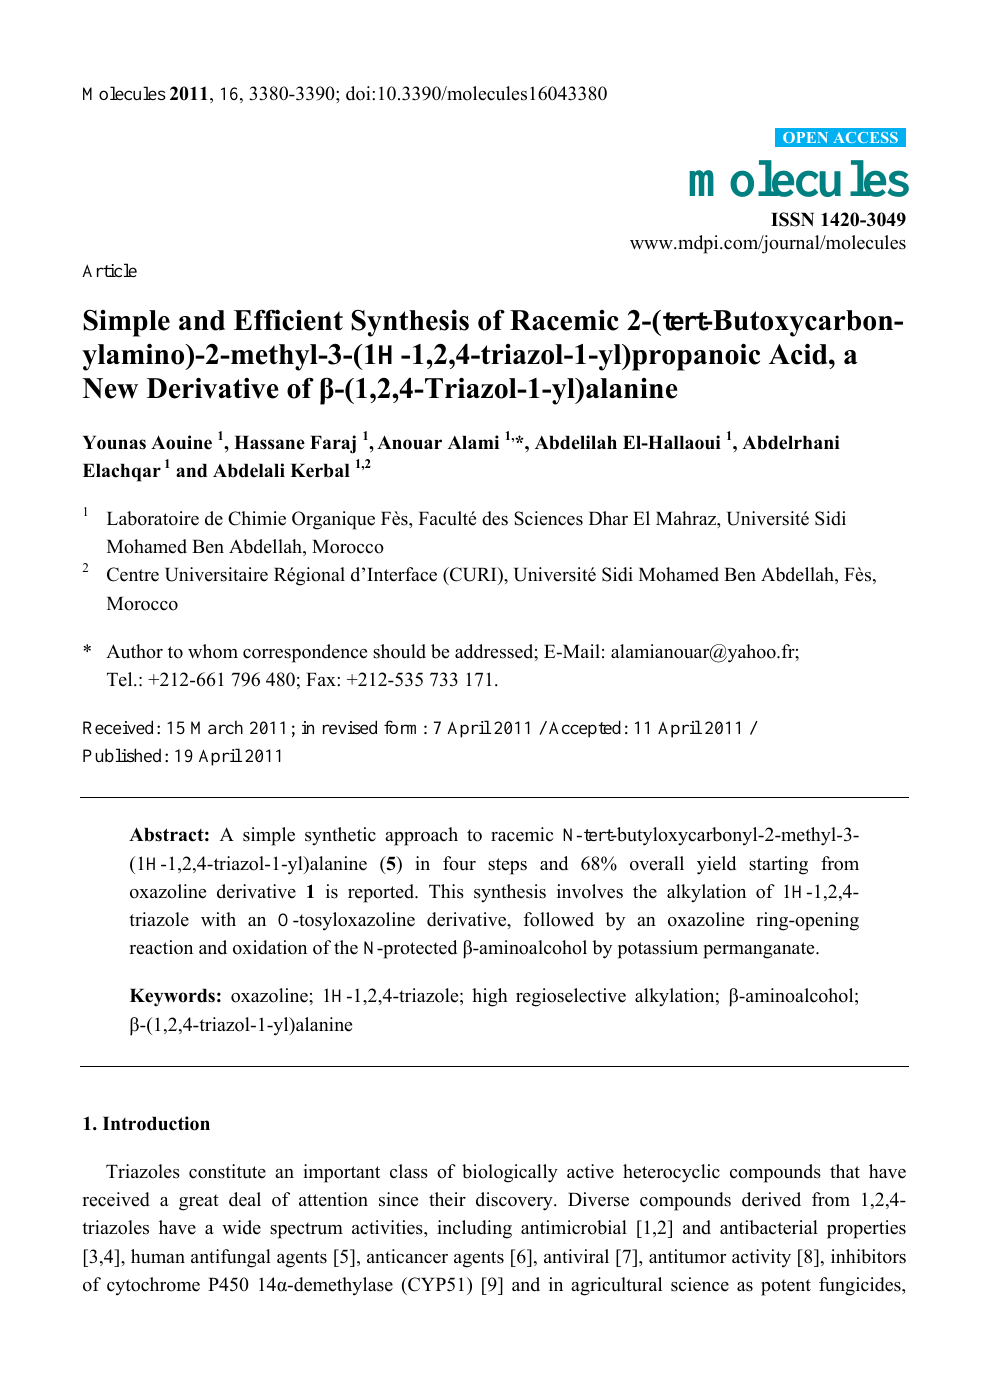 Simple and Efficient Synthesis of Racemic 2-(tert-Butoxycarbon